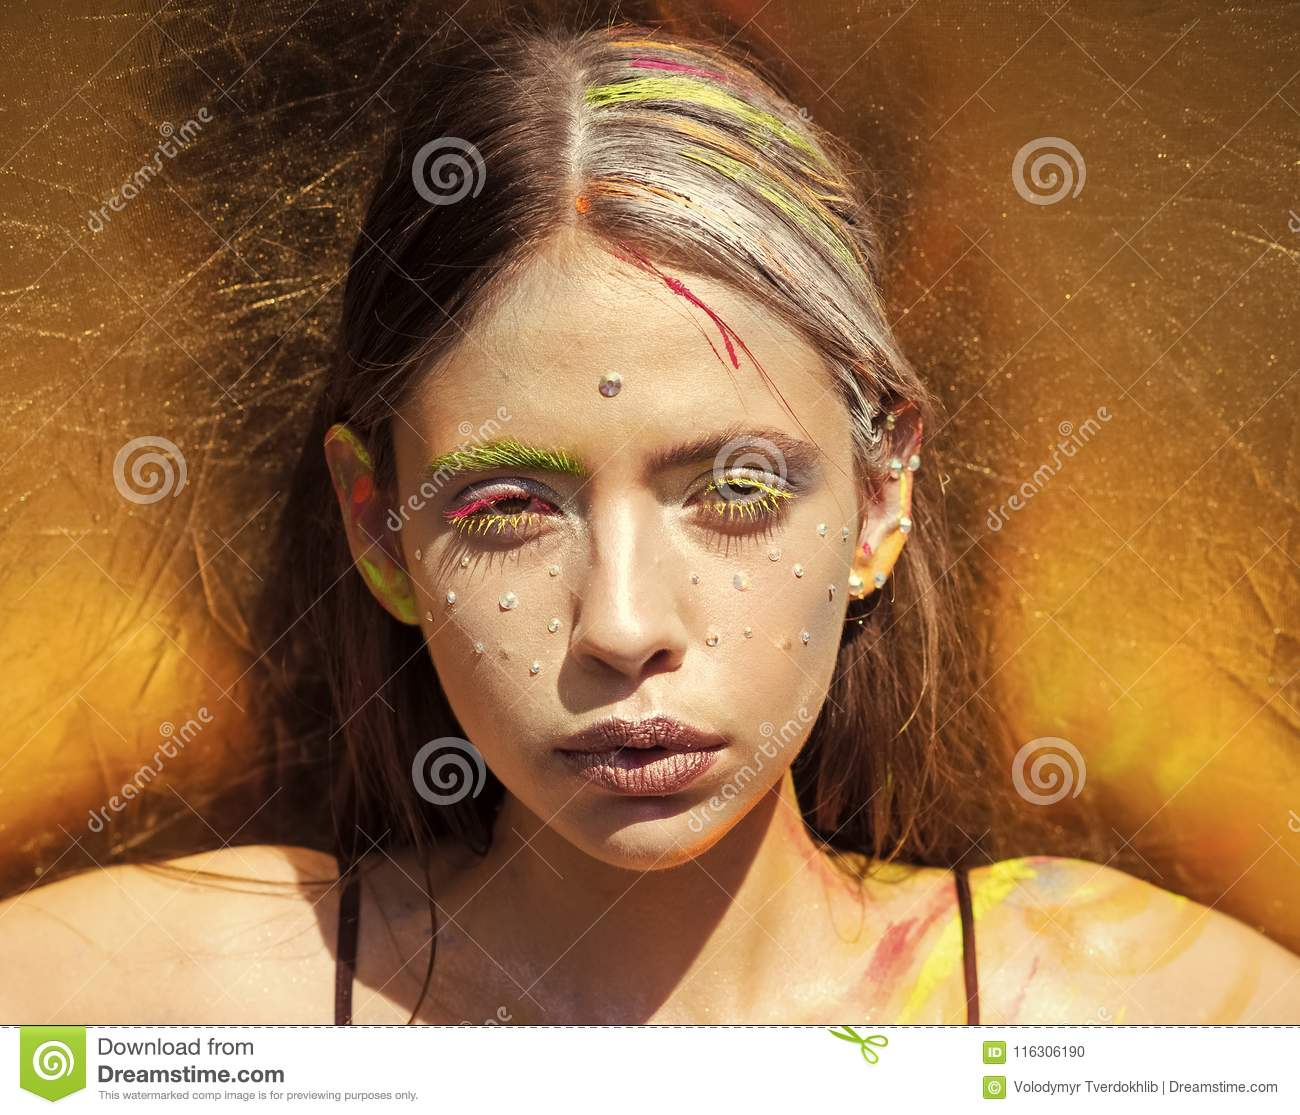 Indian woman with colorful neon paint makeup face